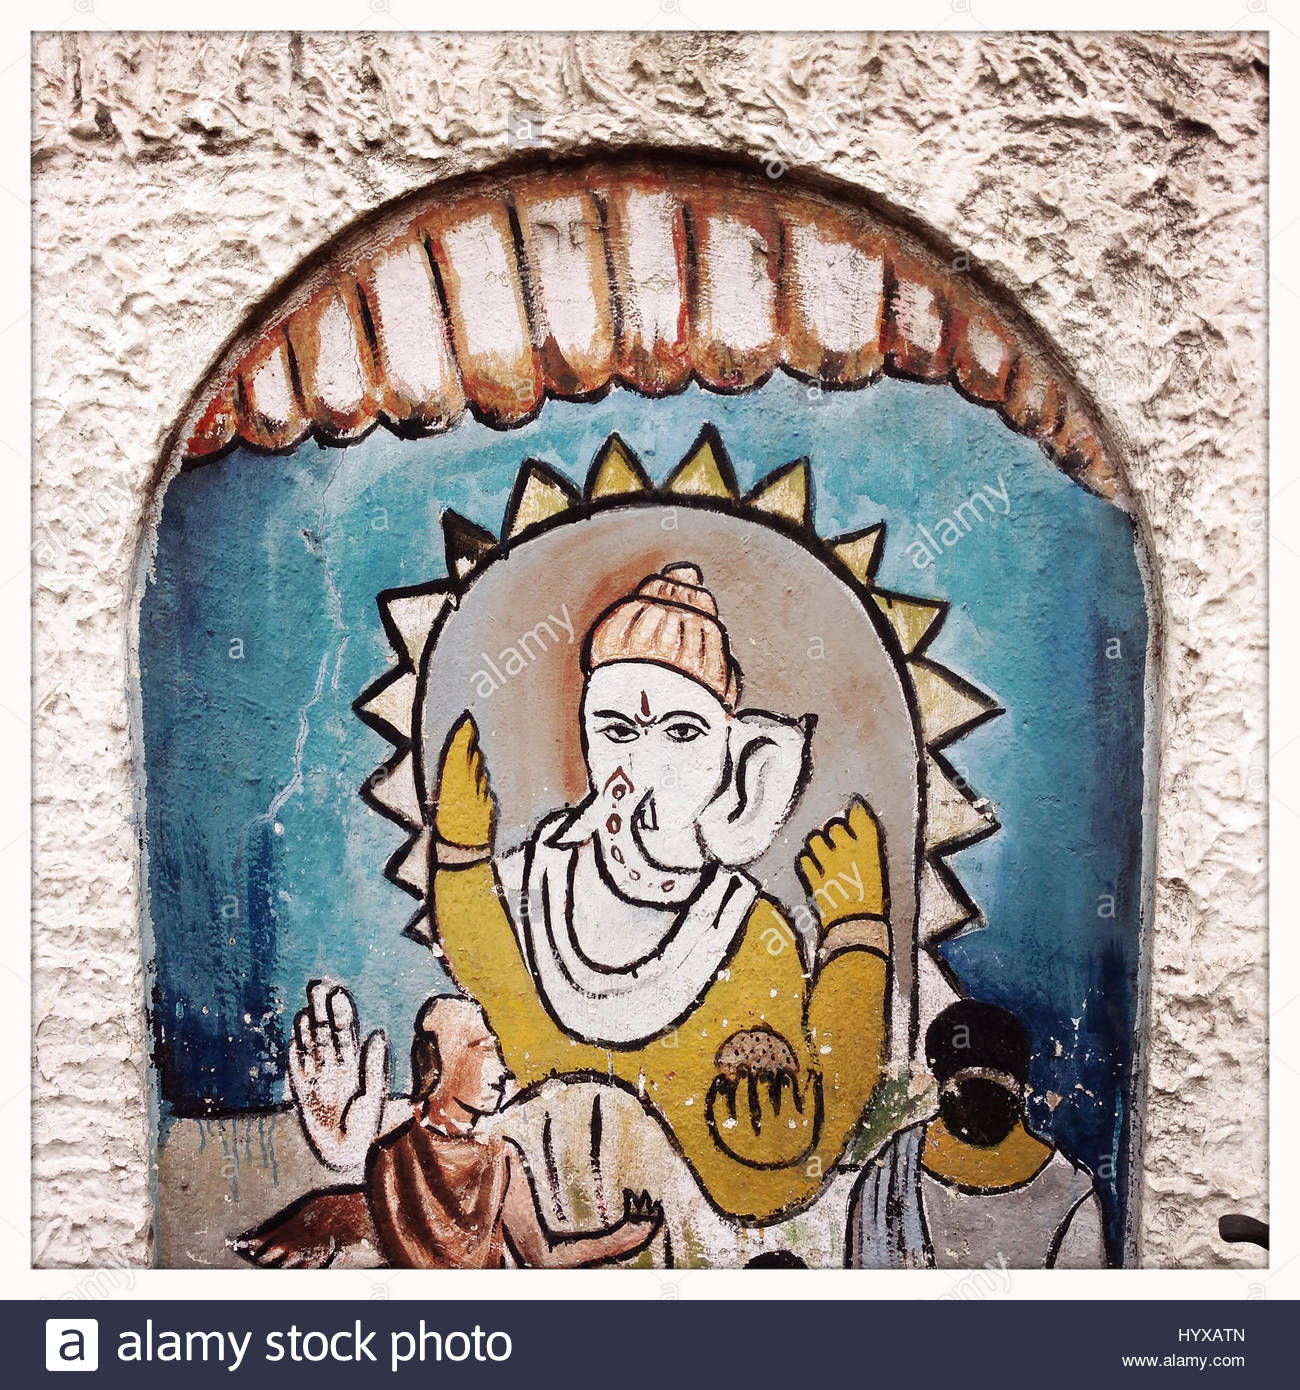 A painting of the Hindu deity, Ganesh, outside a school on the streets of Kolkata. - Stock Image